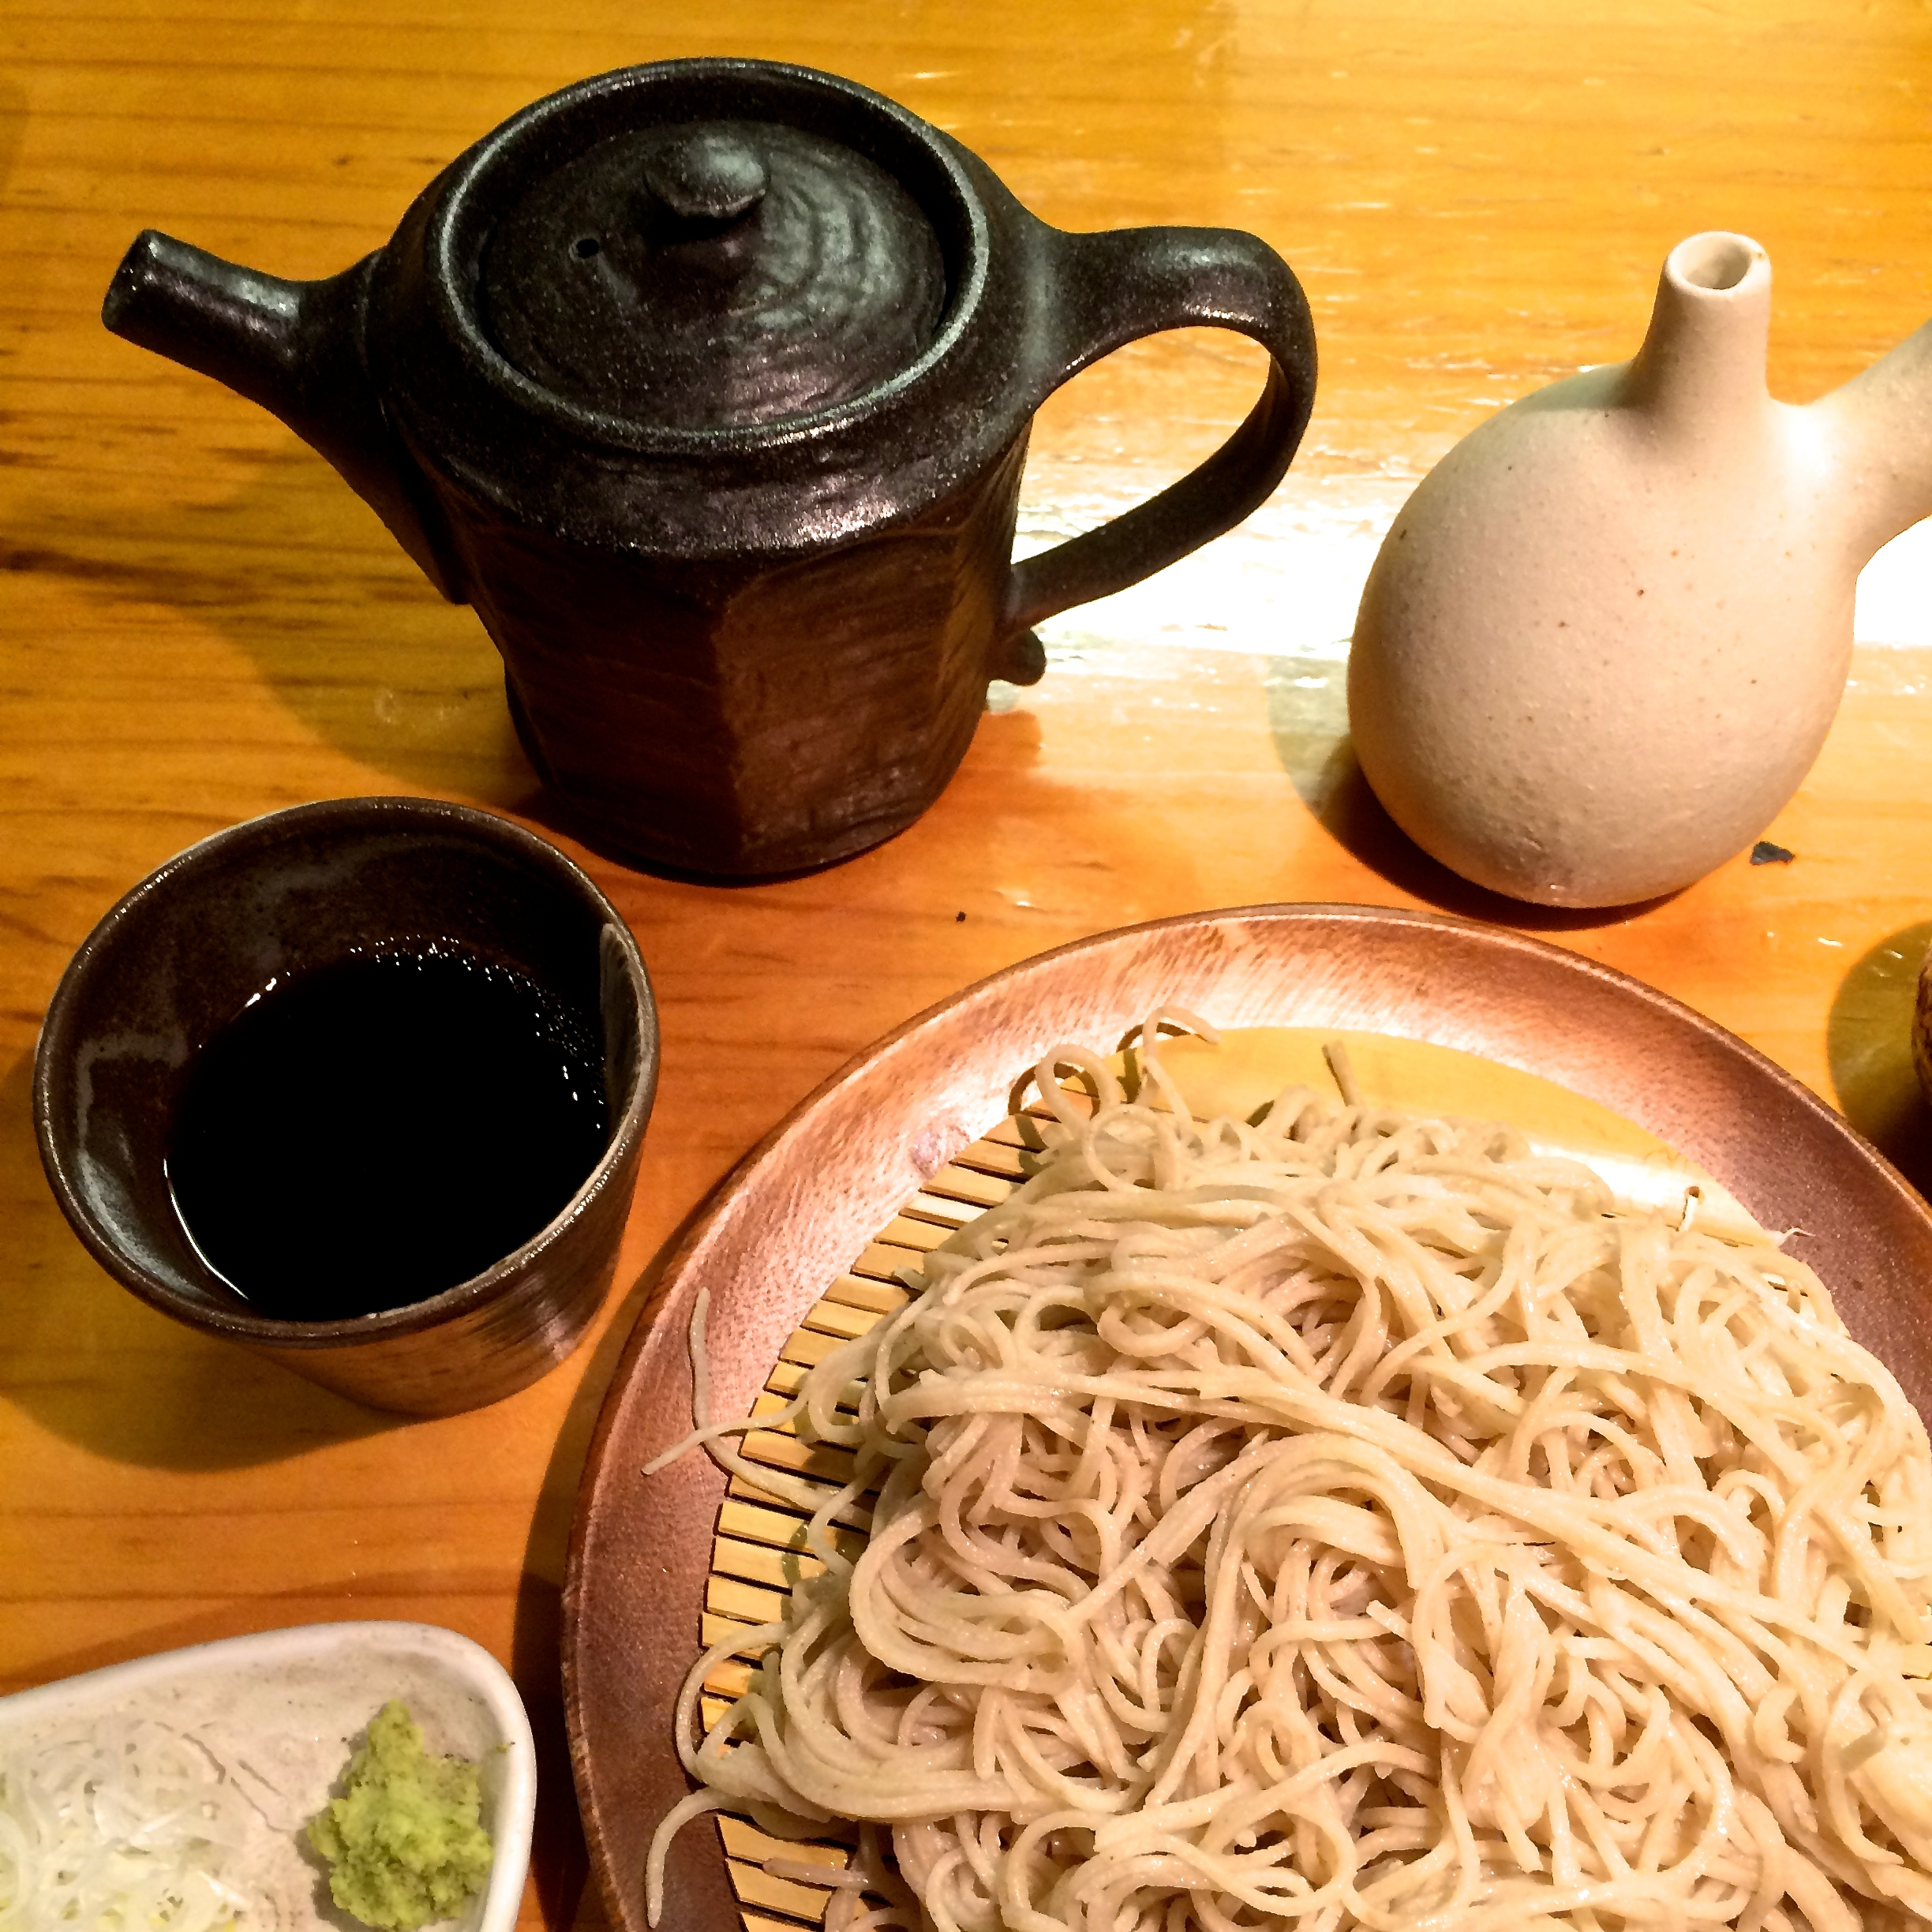 Noodles for connoisseurs: Kyorakutei's hand-made soba has a fragrant, nutty flavor that needs little embellishing. | ROBBIE SWINNERTON